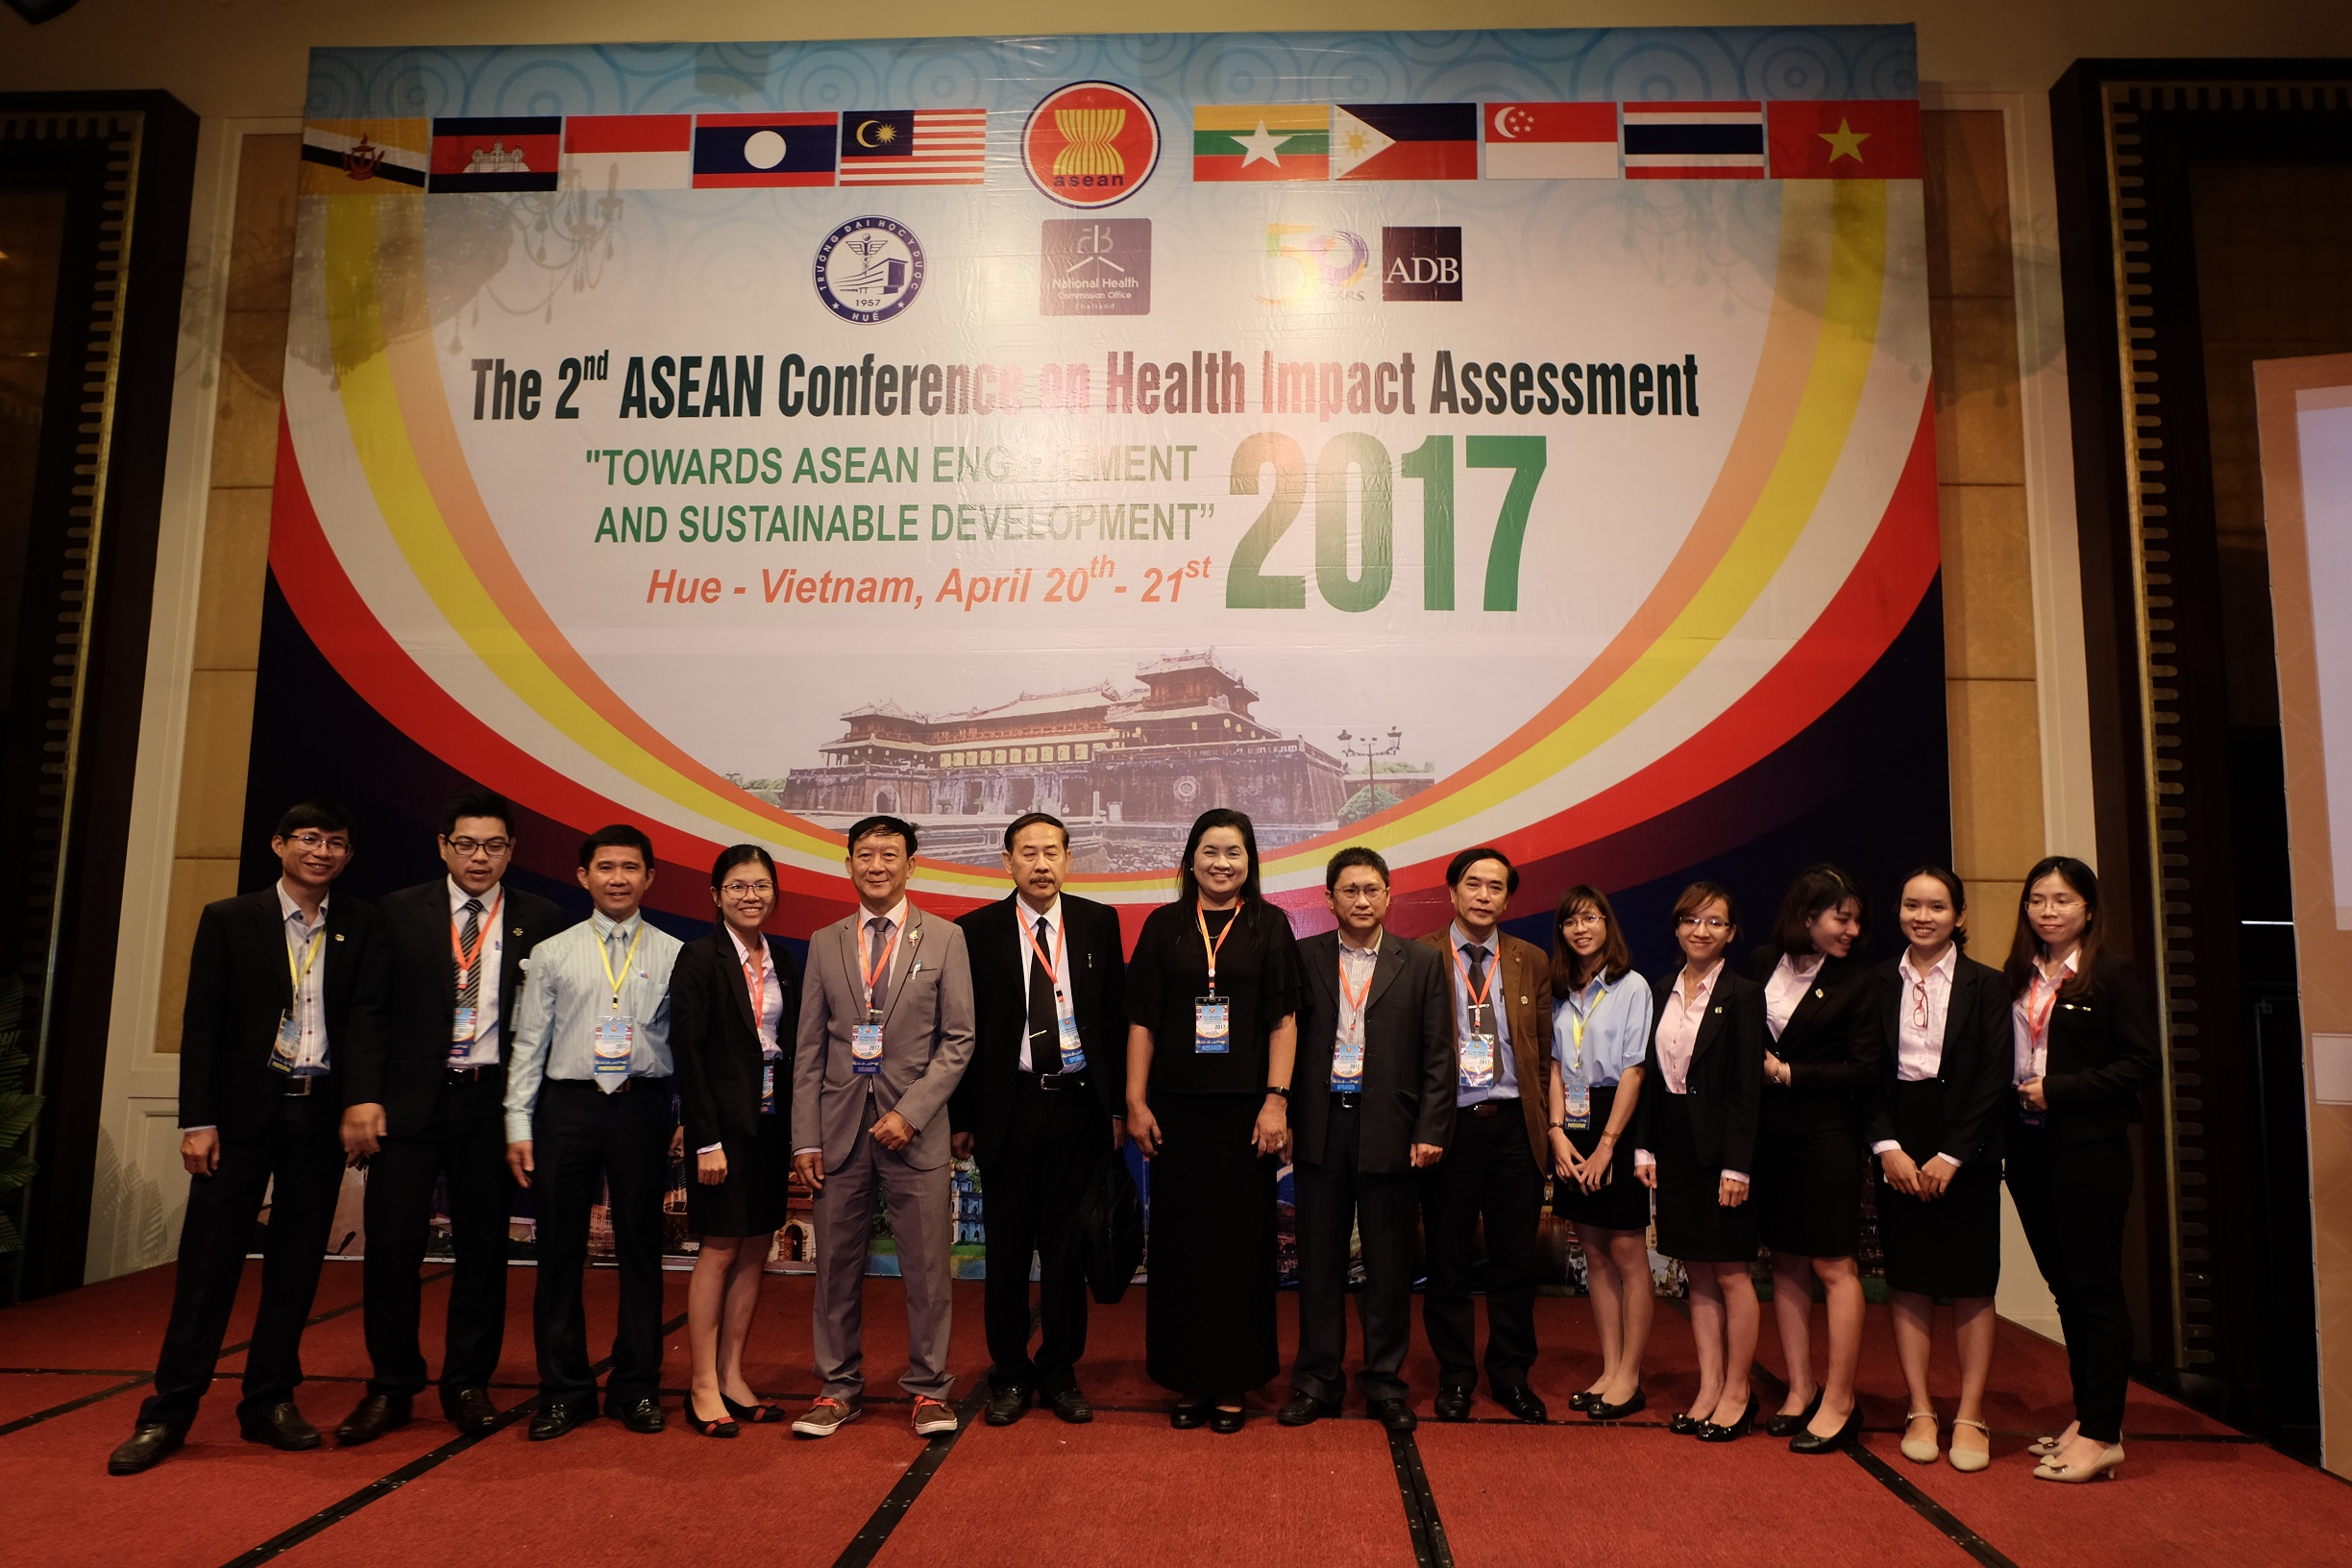 ICHR and the 2nd ASEAN Conference on Health Impact Assessment